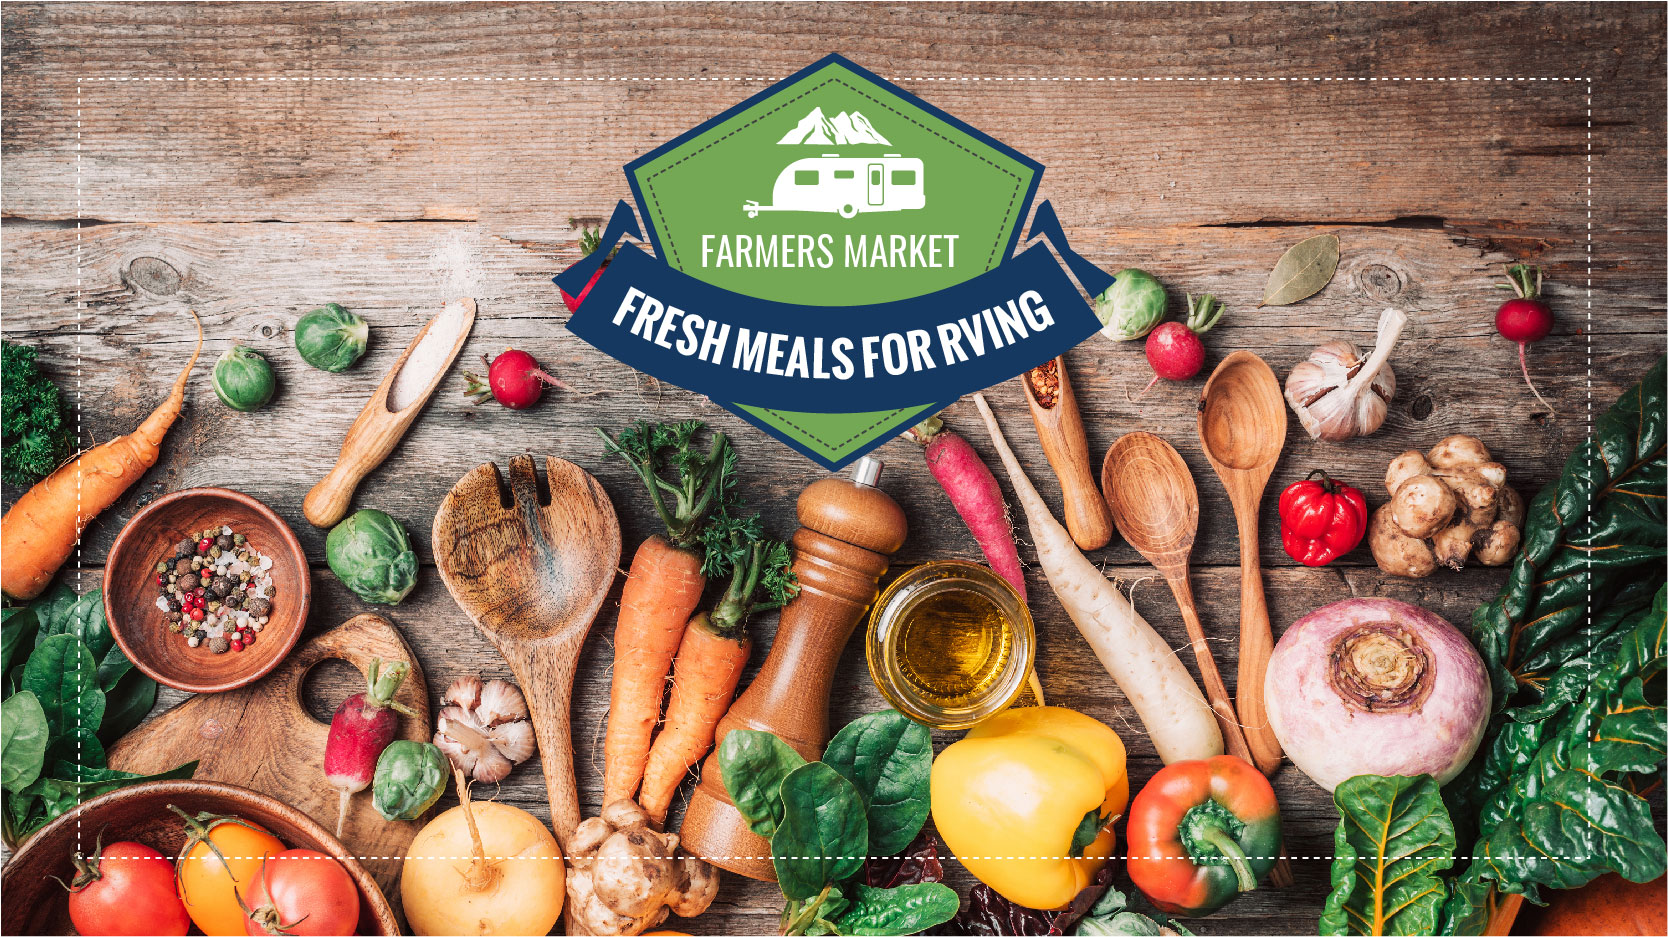 Farmers Market Fresh Meals for RVing